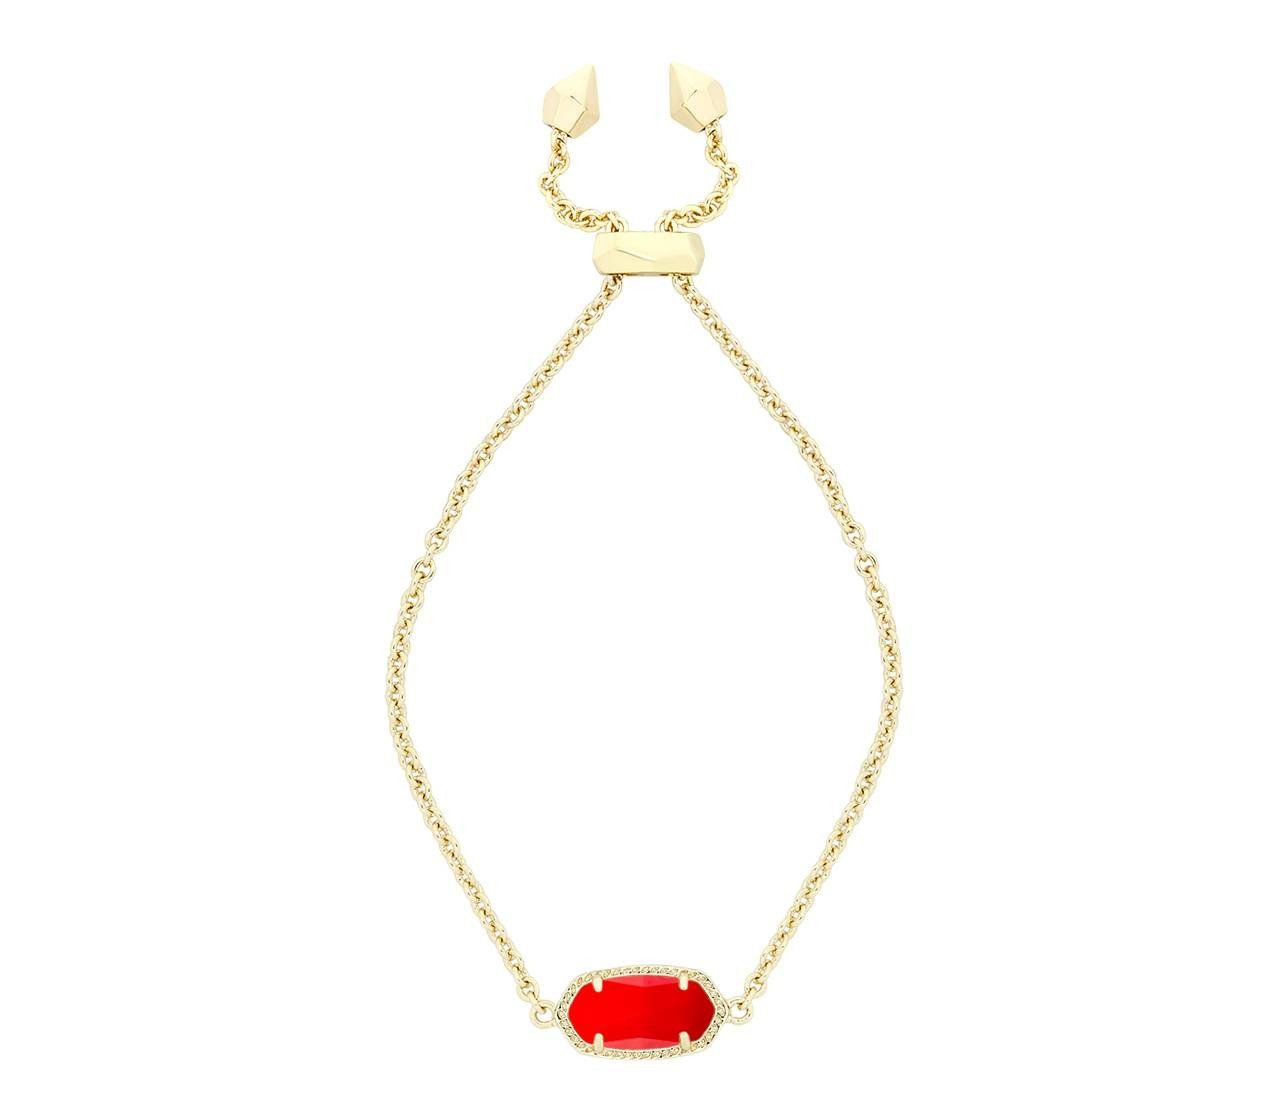 Kendra scott elaina bracelet in bright red products